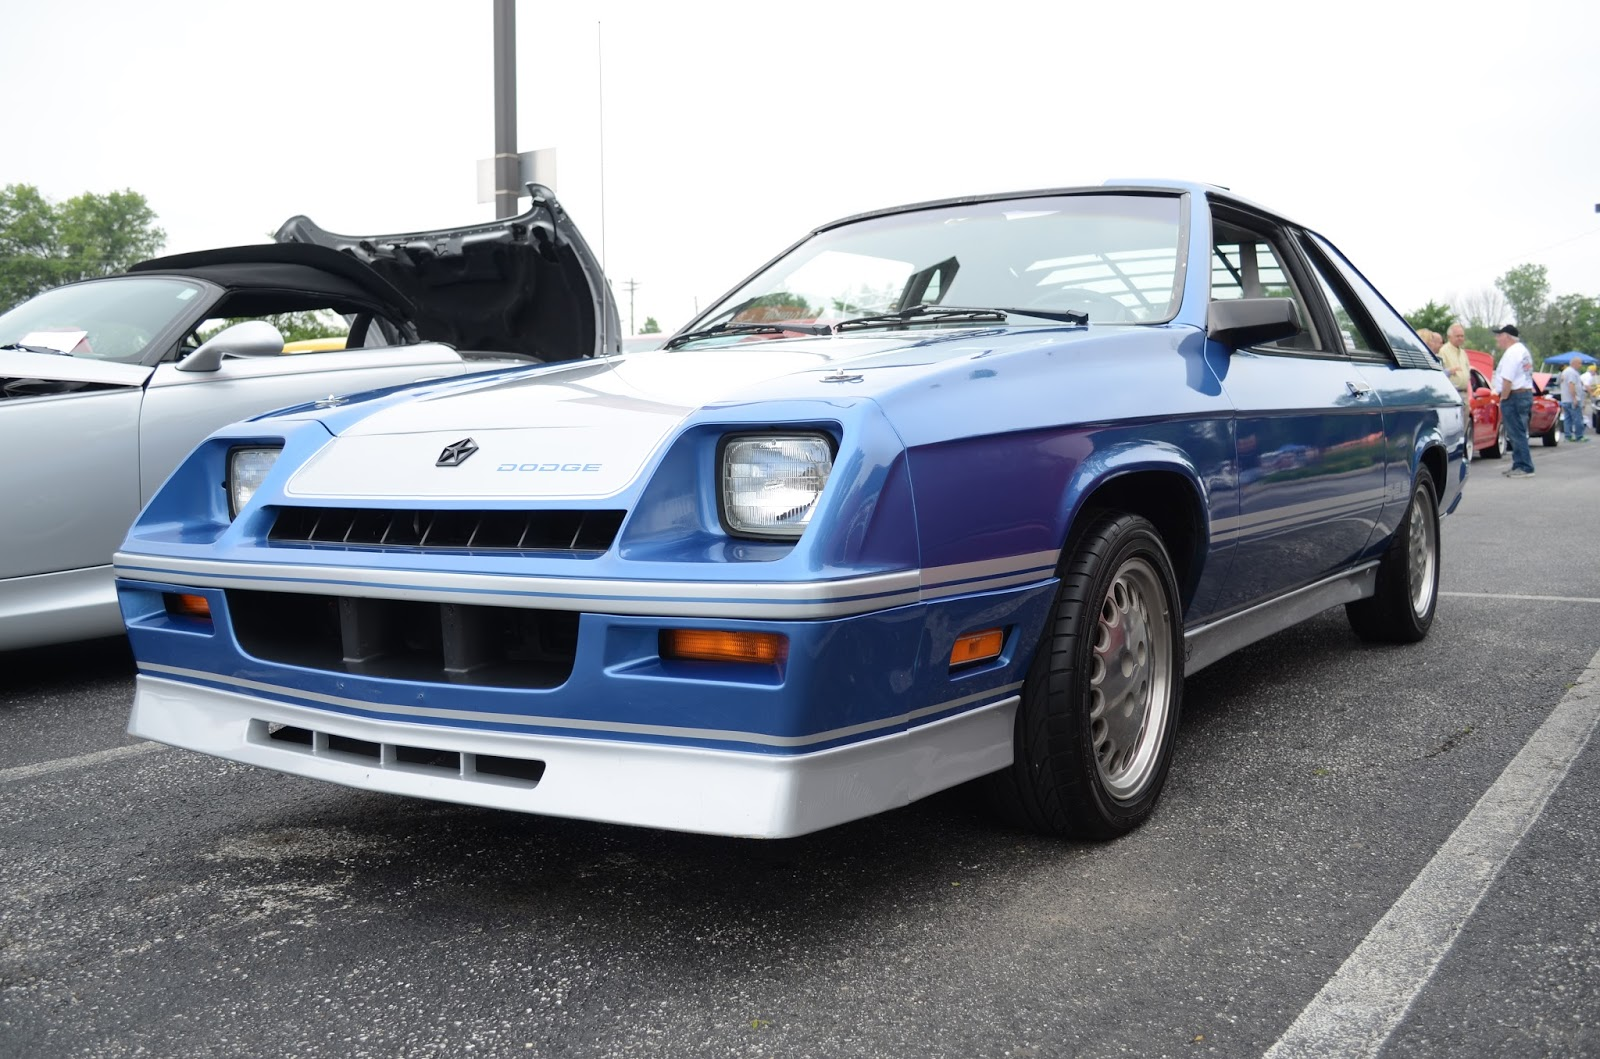 Turnerbudds Car Blog: The First Clermont Classic Car Show and Flea ...